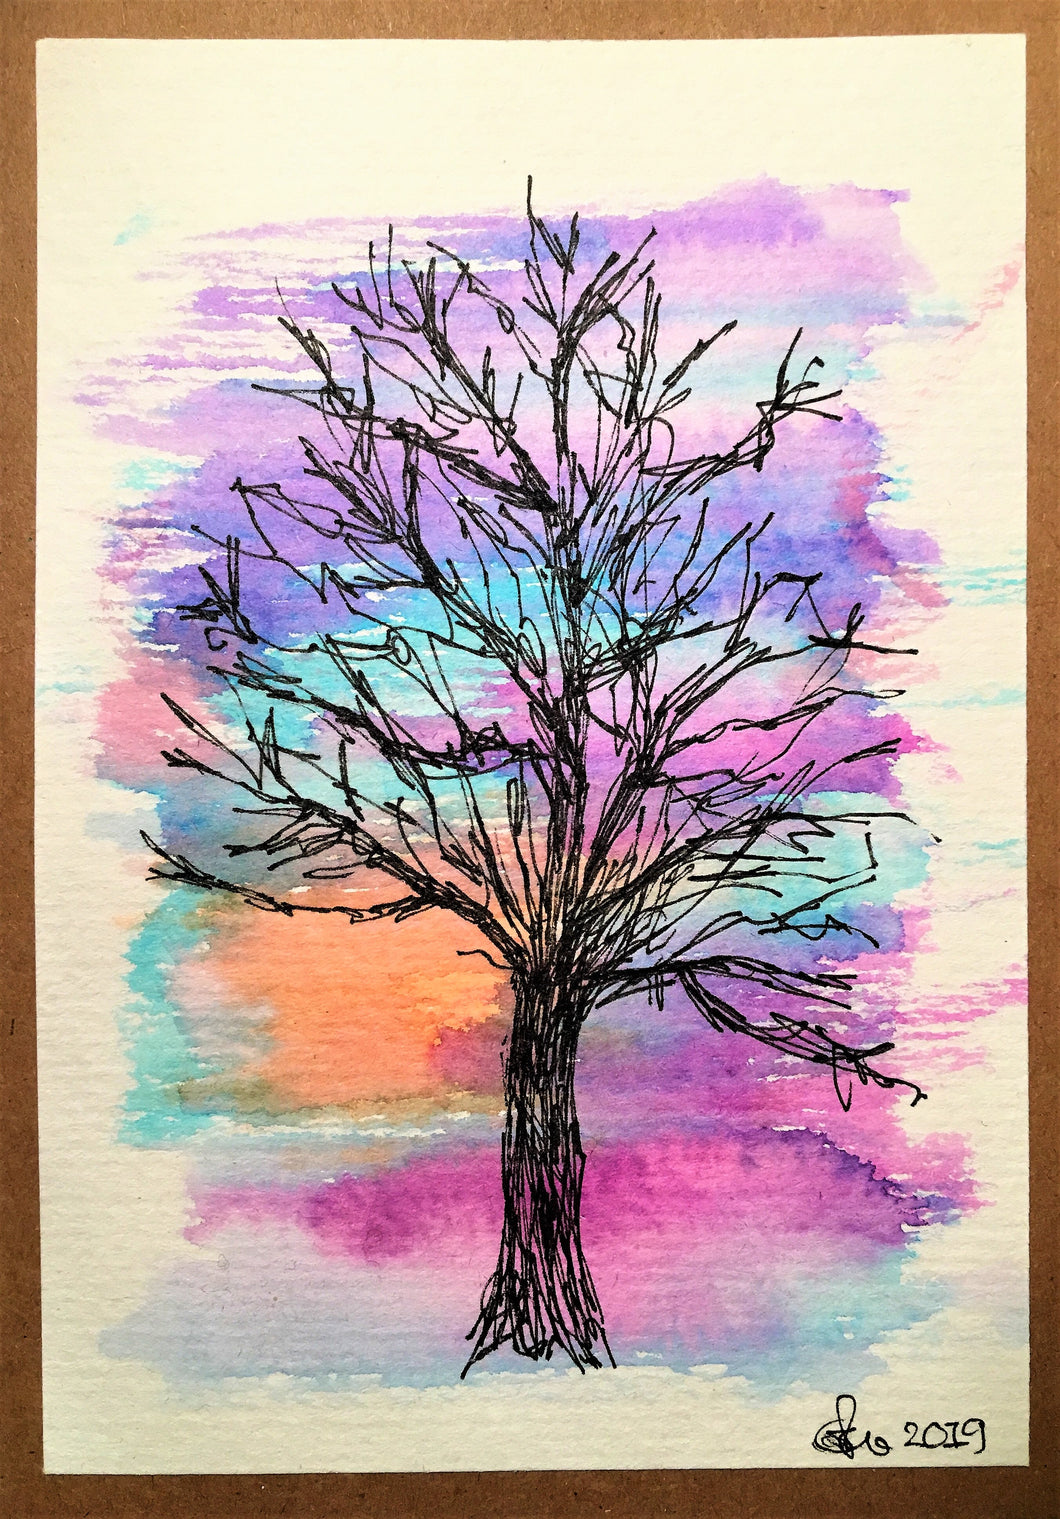 Handpainted Watercolour Greeting Card - Abstract Tree at Sunset 1 - eDgE dEsiGn London